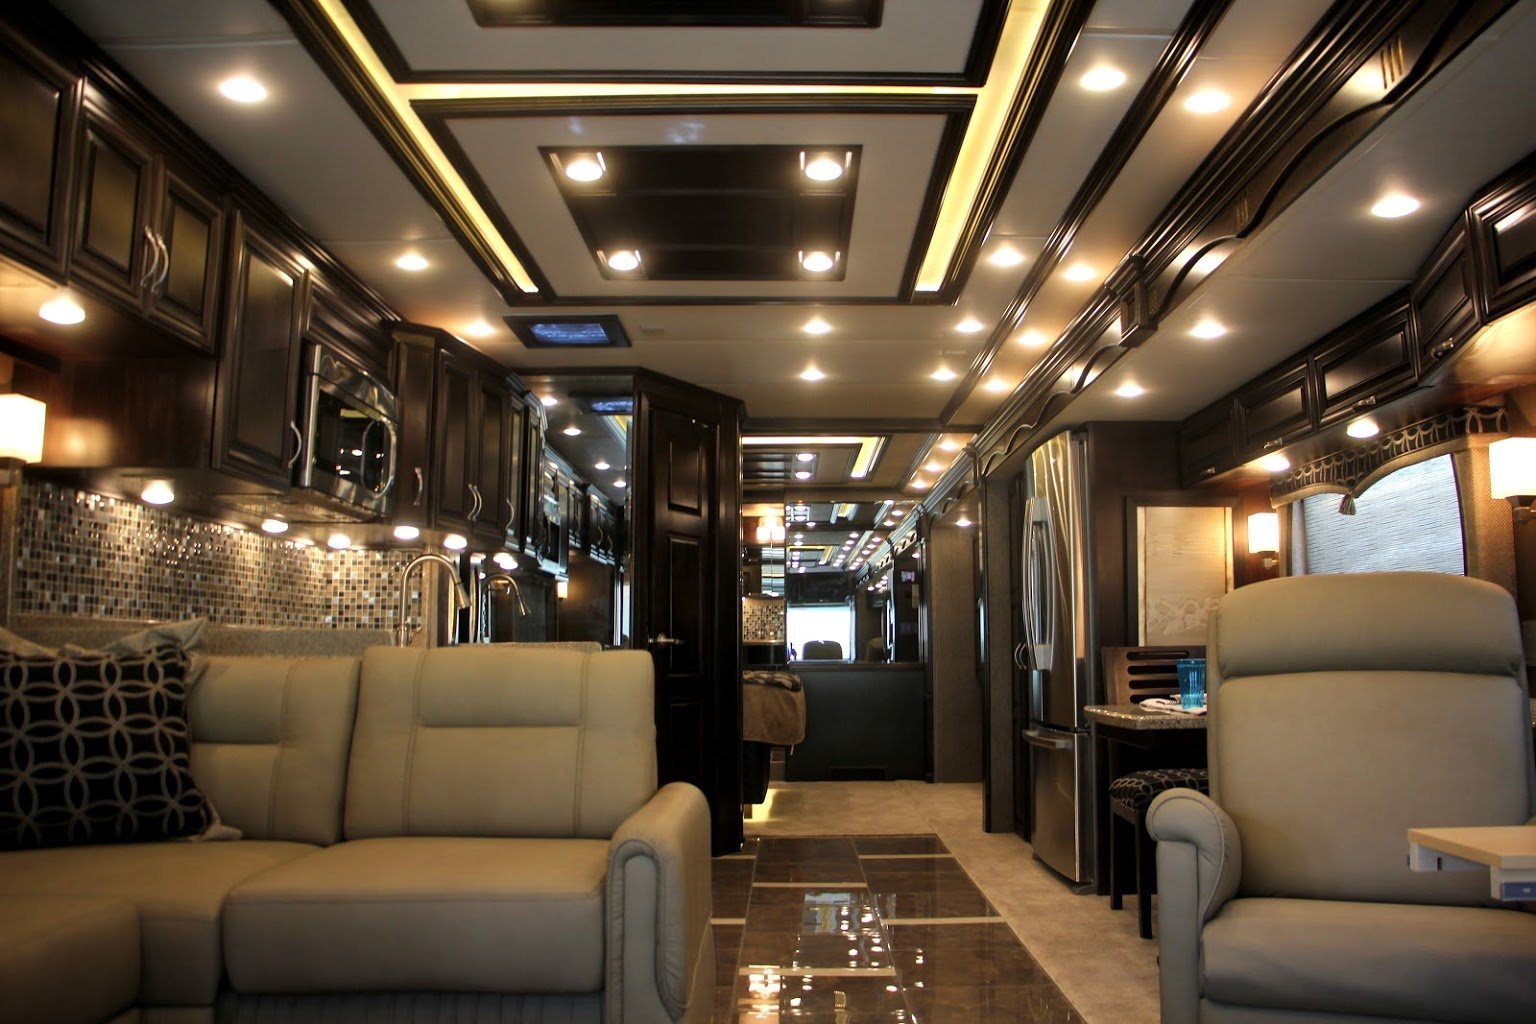 interior of Recreational Vehicle at Dylans RV Center in Sewell, NJ